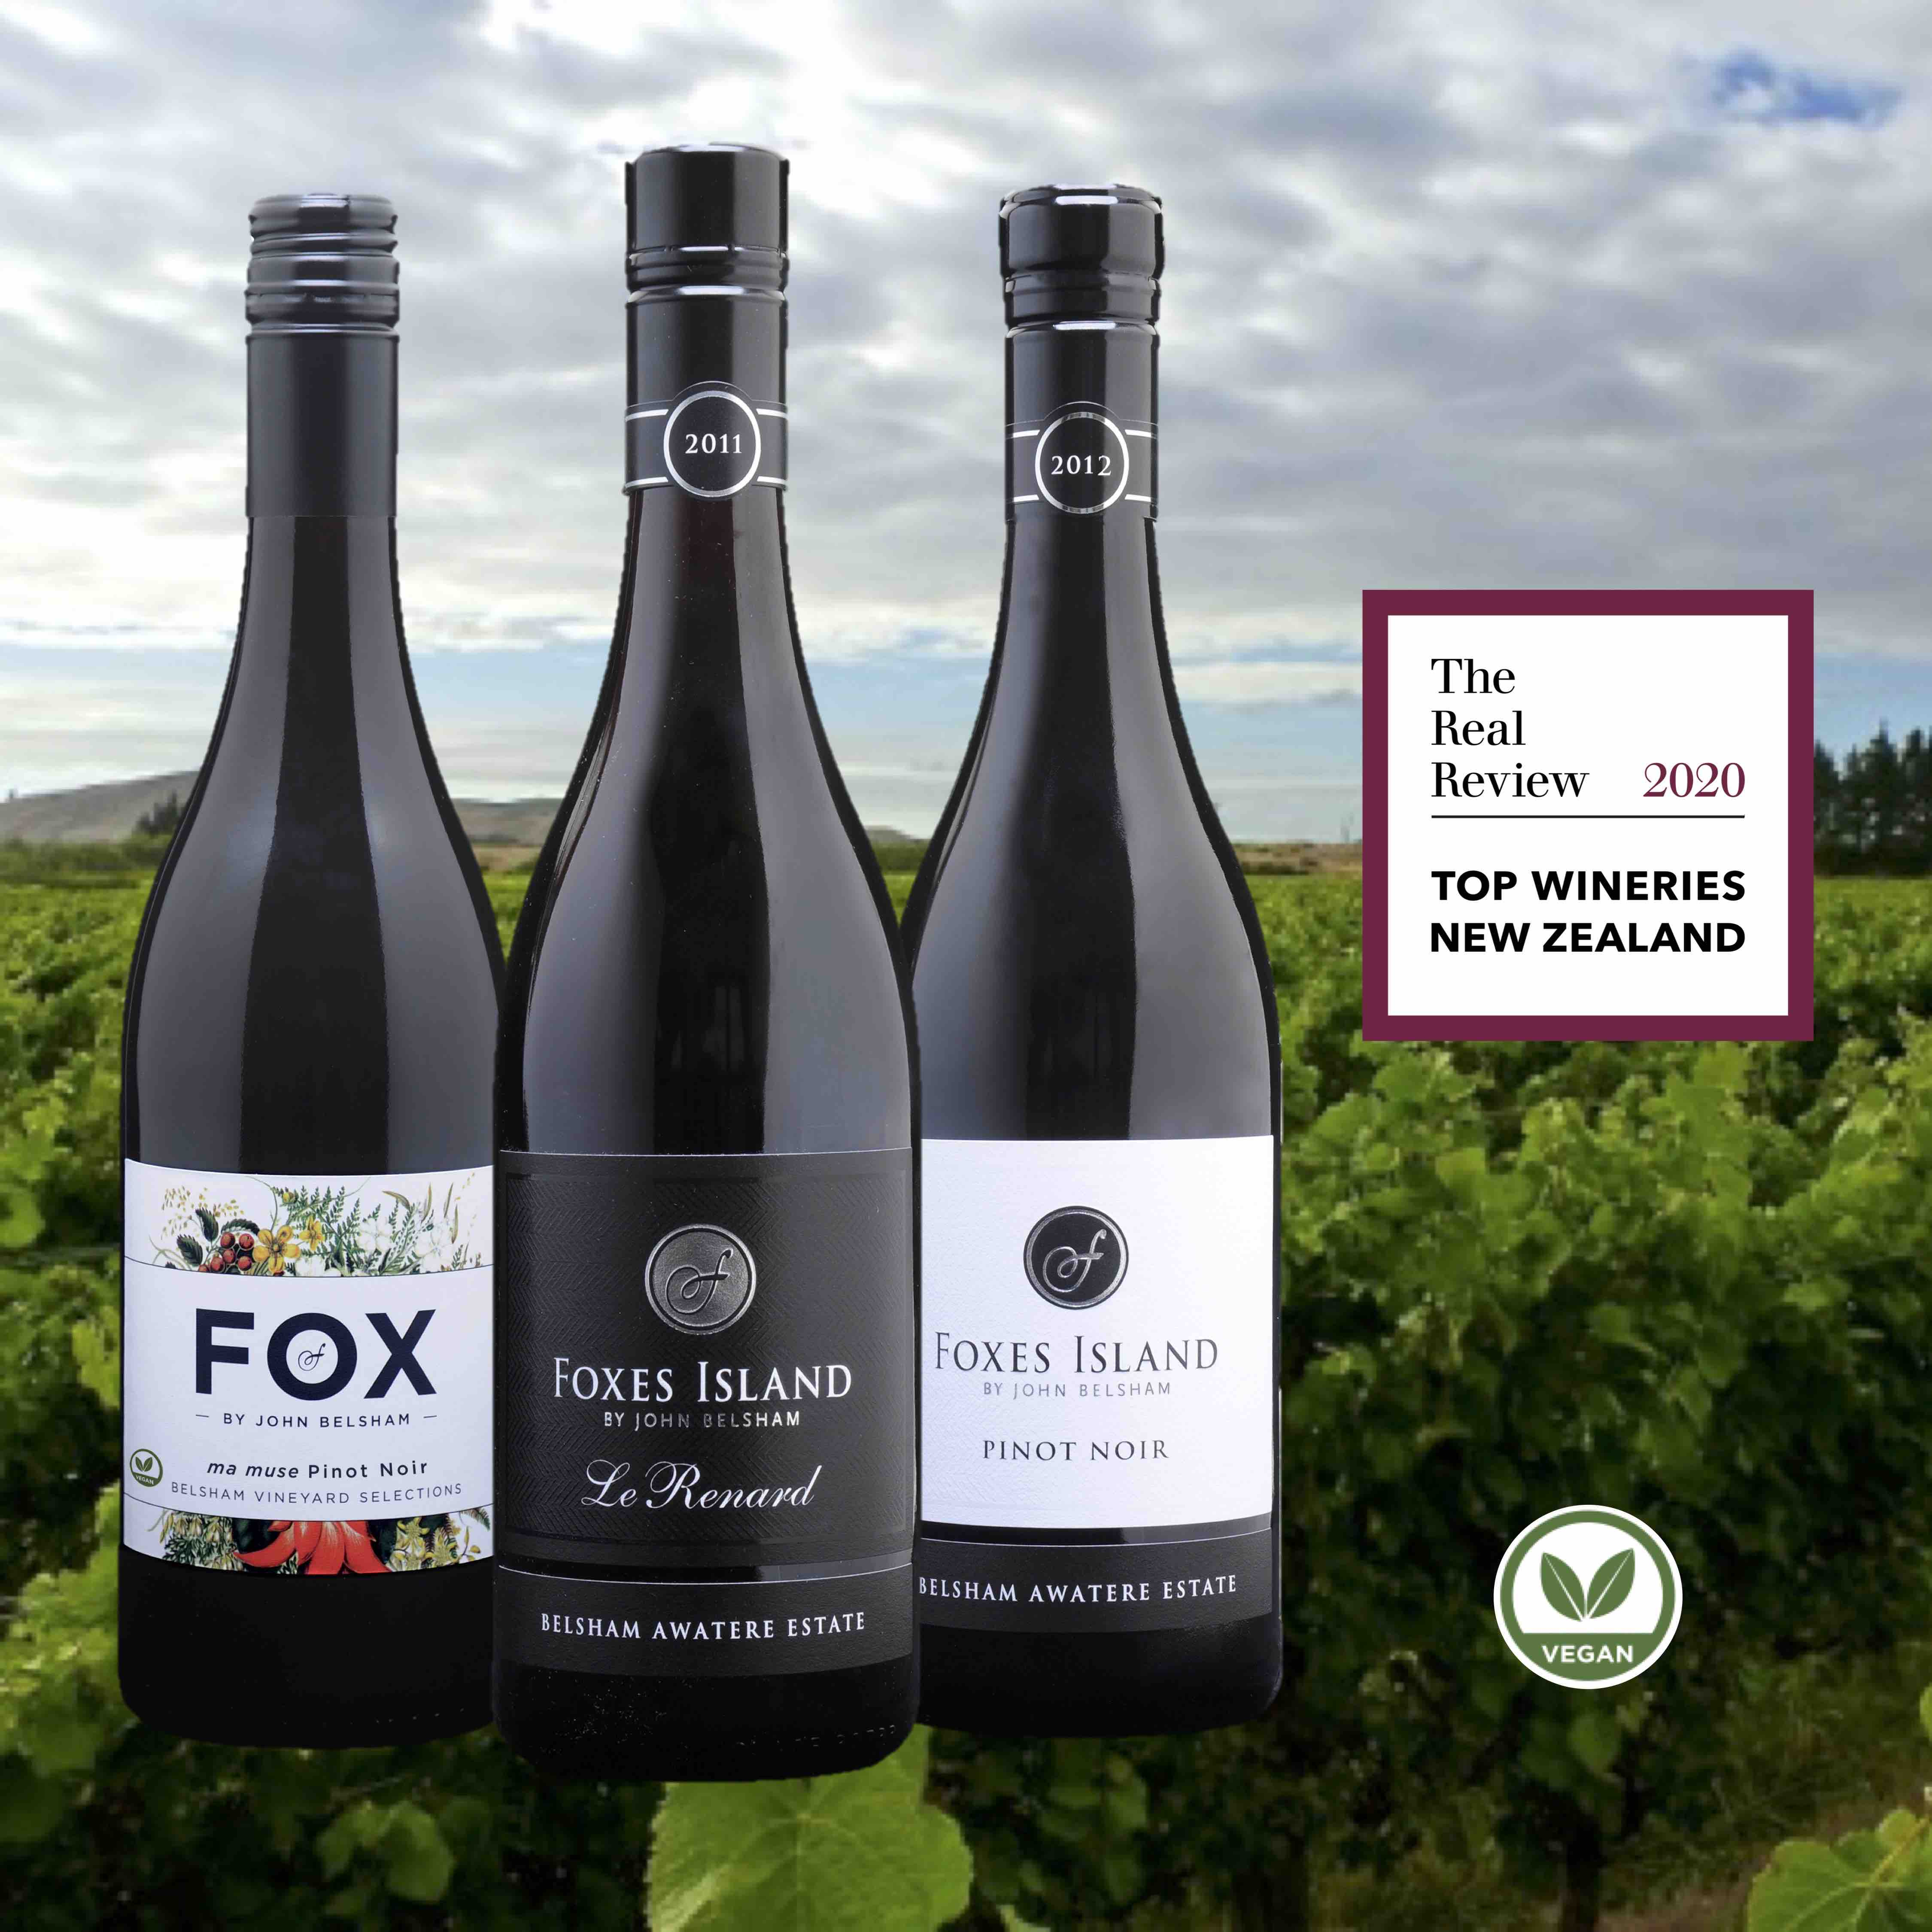 Foxes Island Top Winery 2020